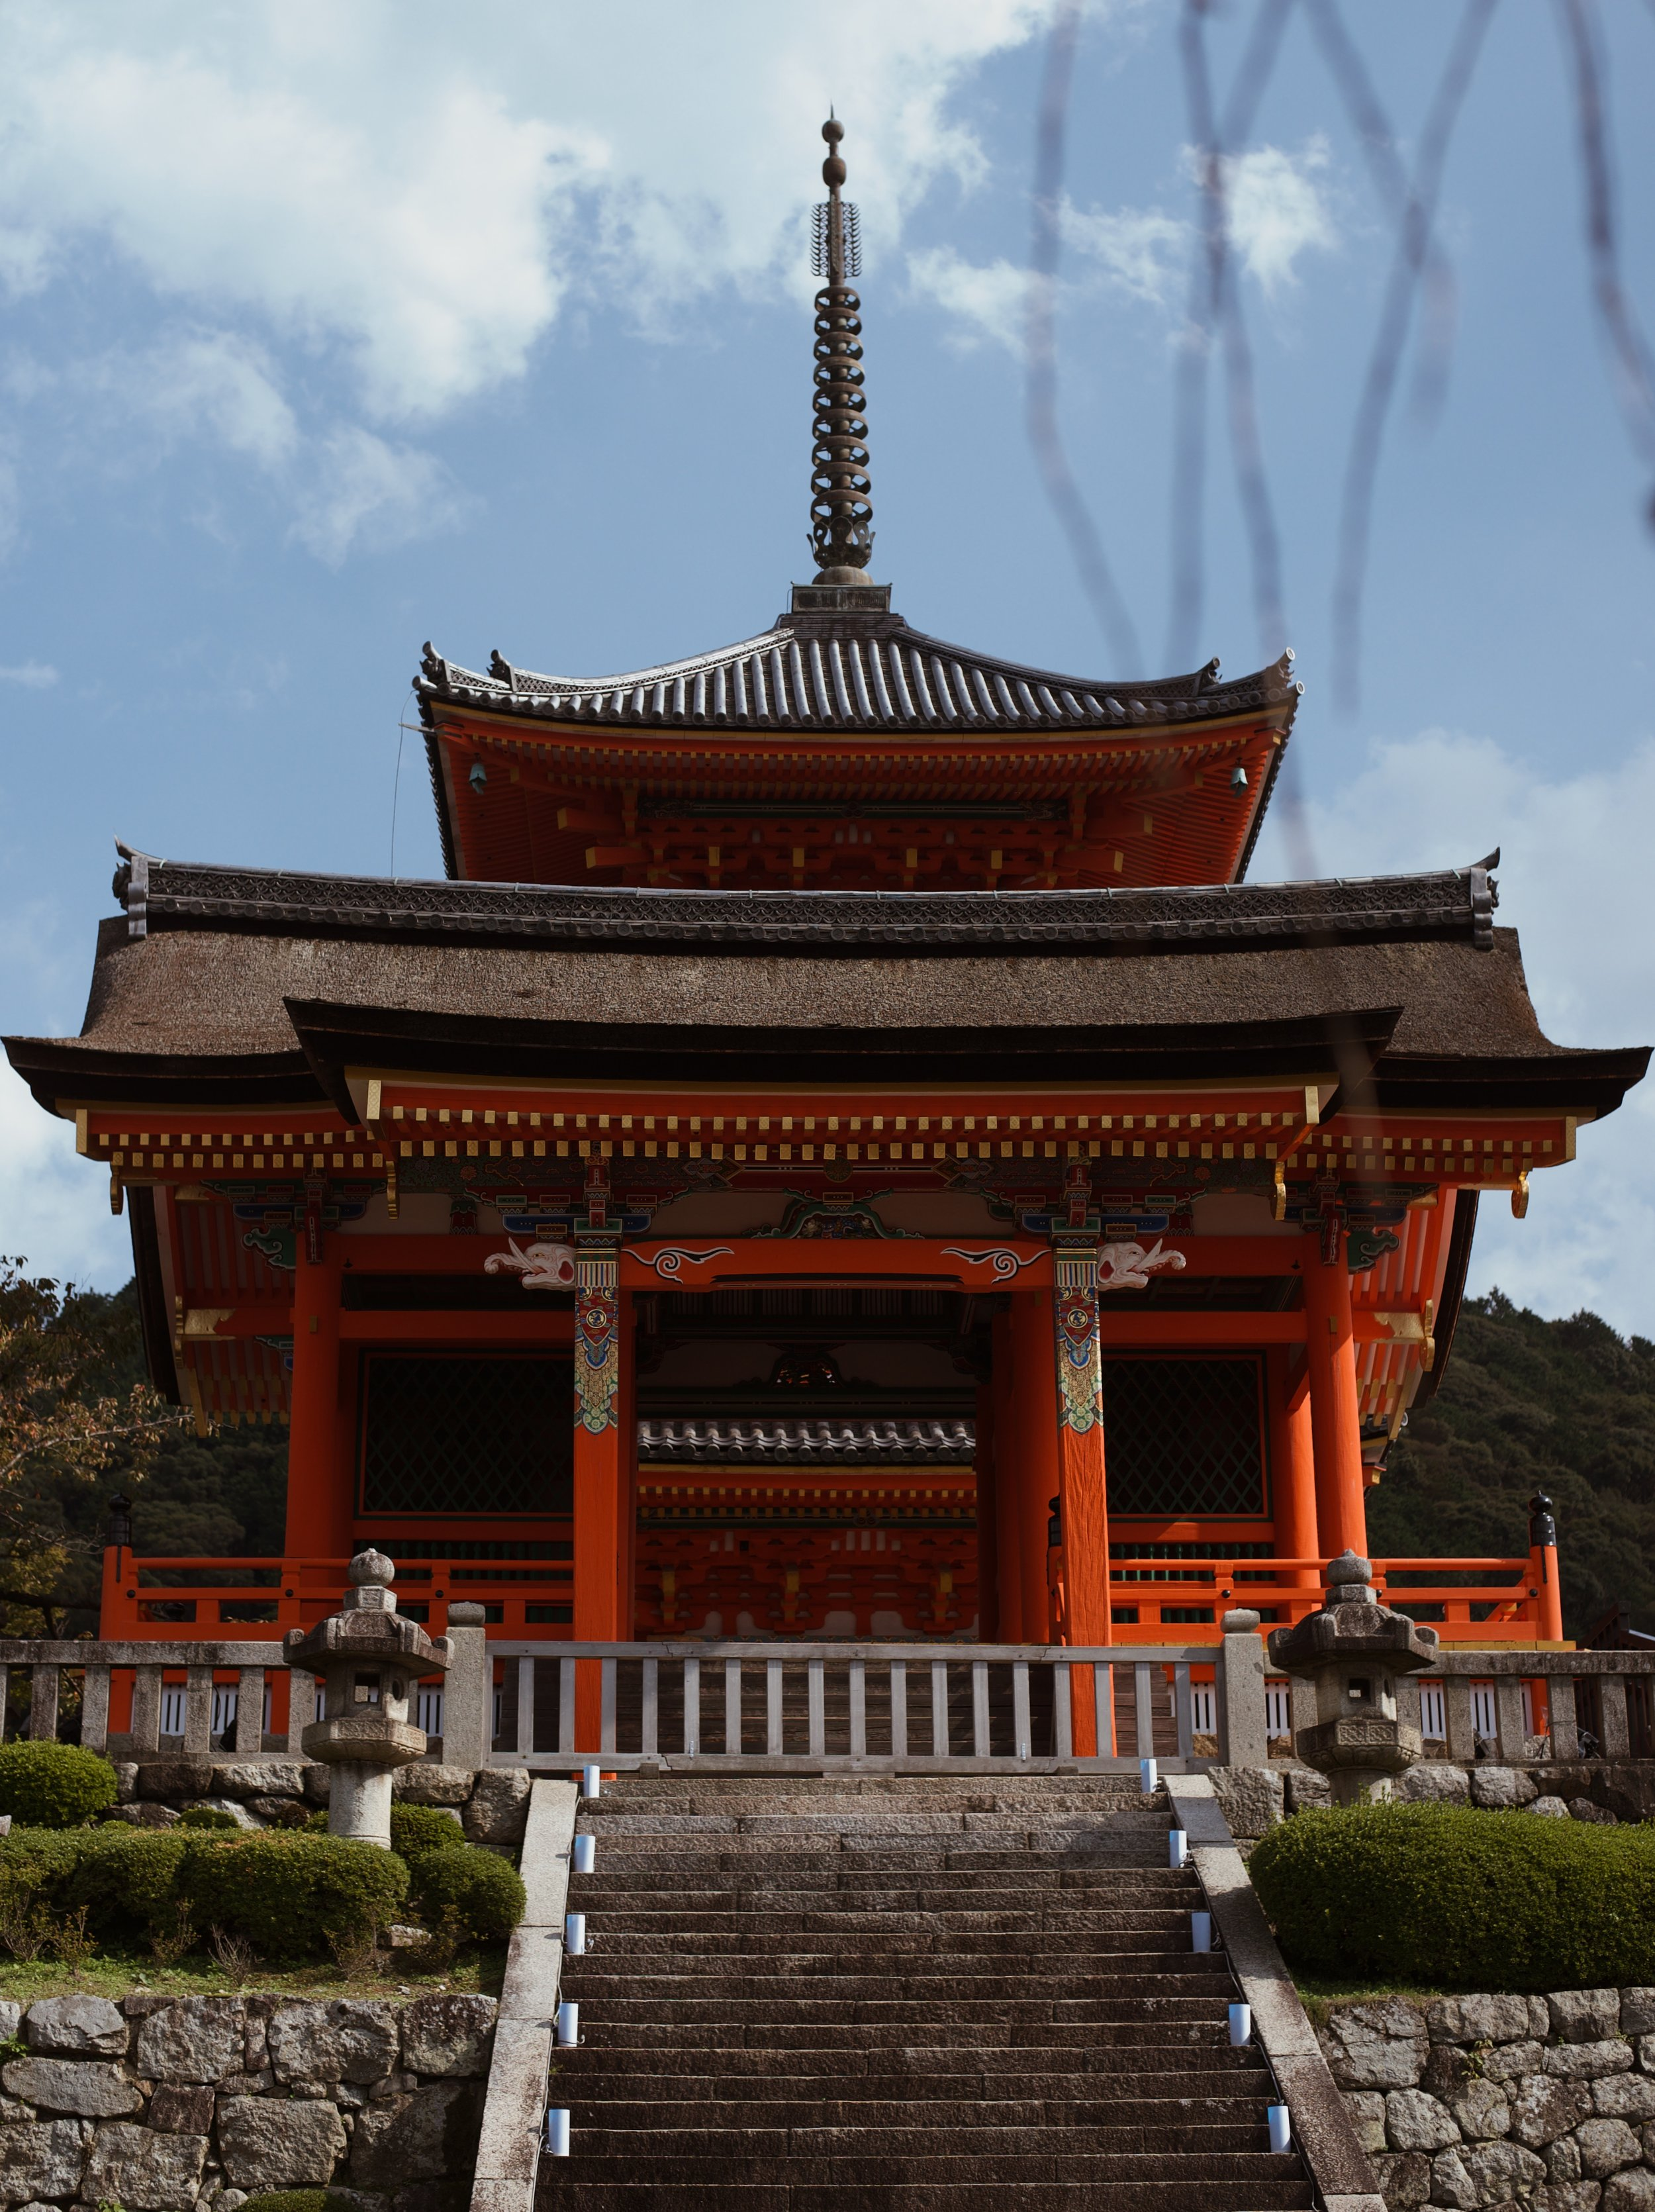 The-Look-Principle-Japanese-Shrines-And-Temples-15.jpg